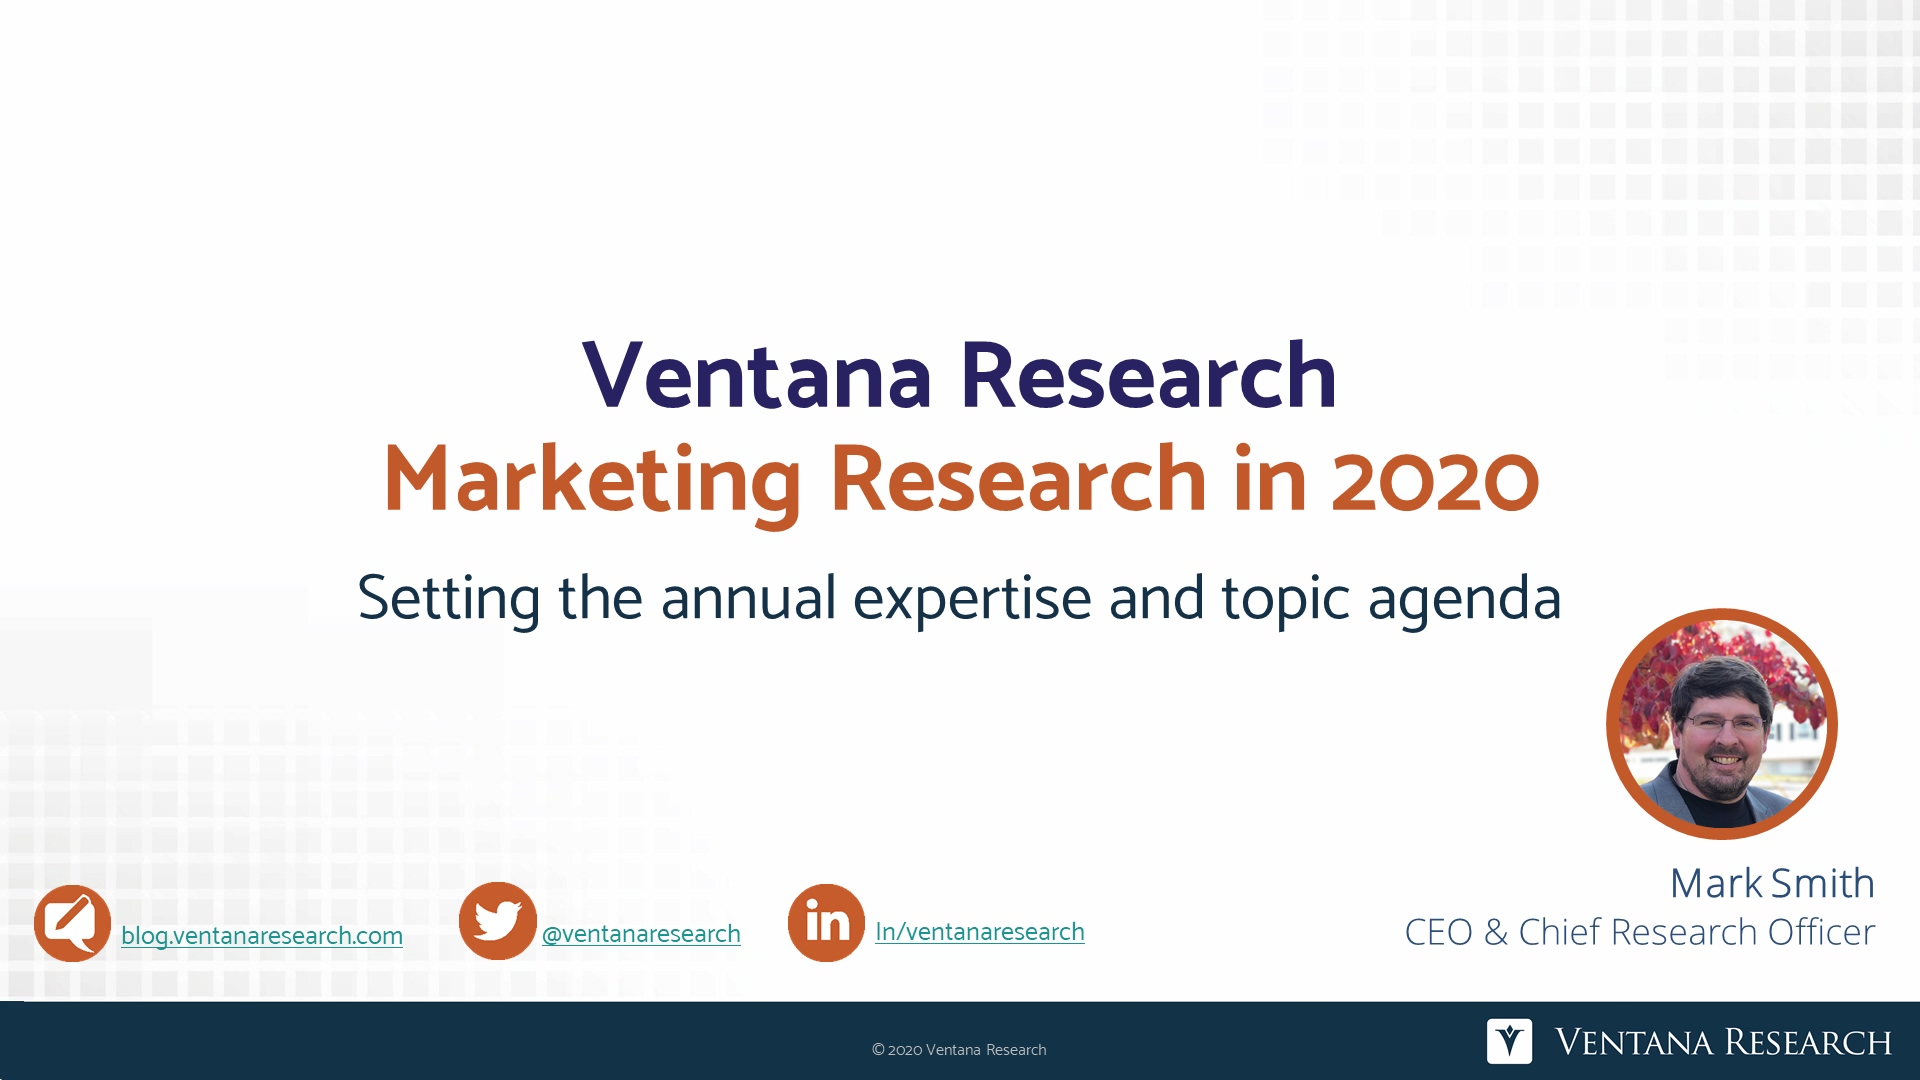 Ventana_Research_2020_Marketing_Research_Agenda